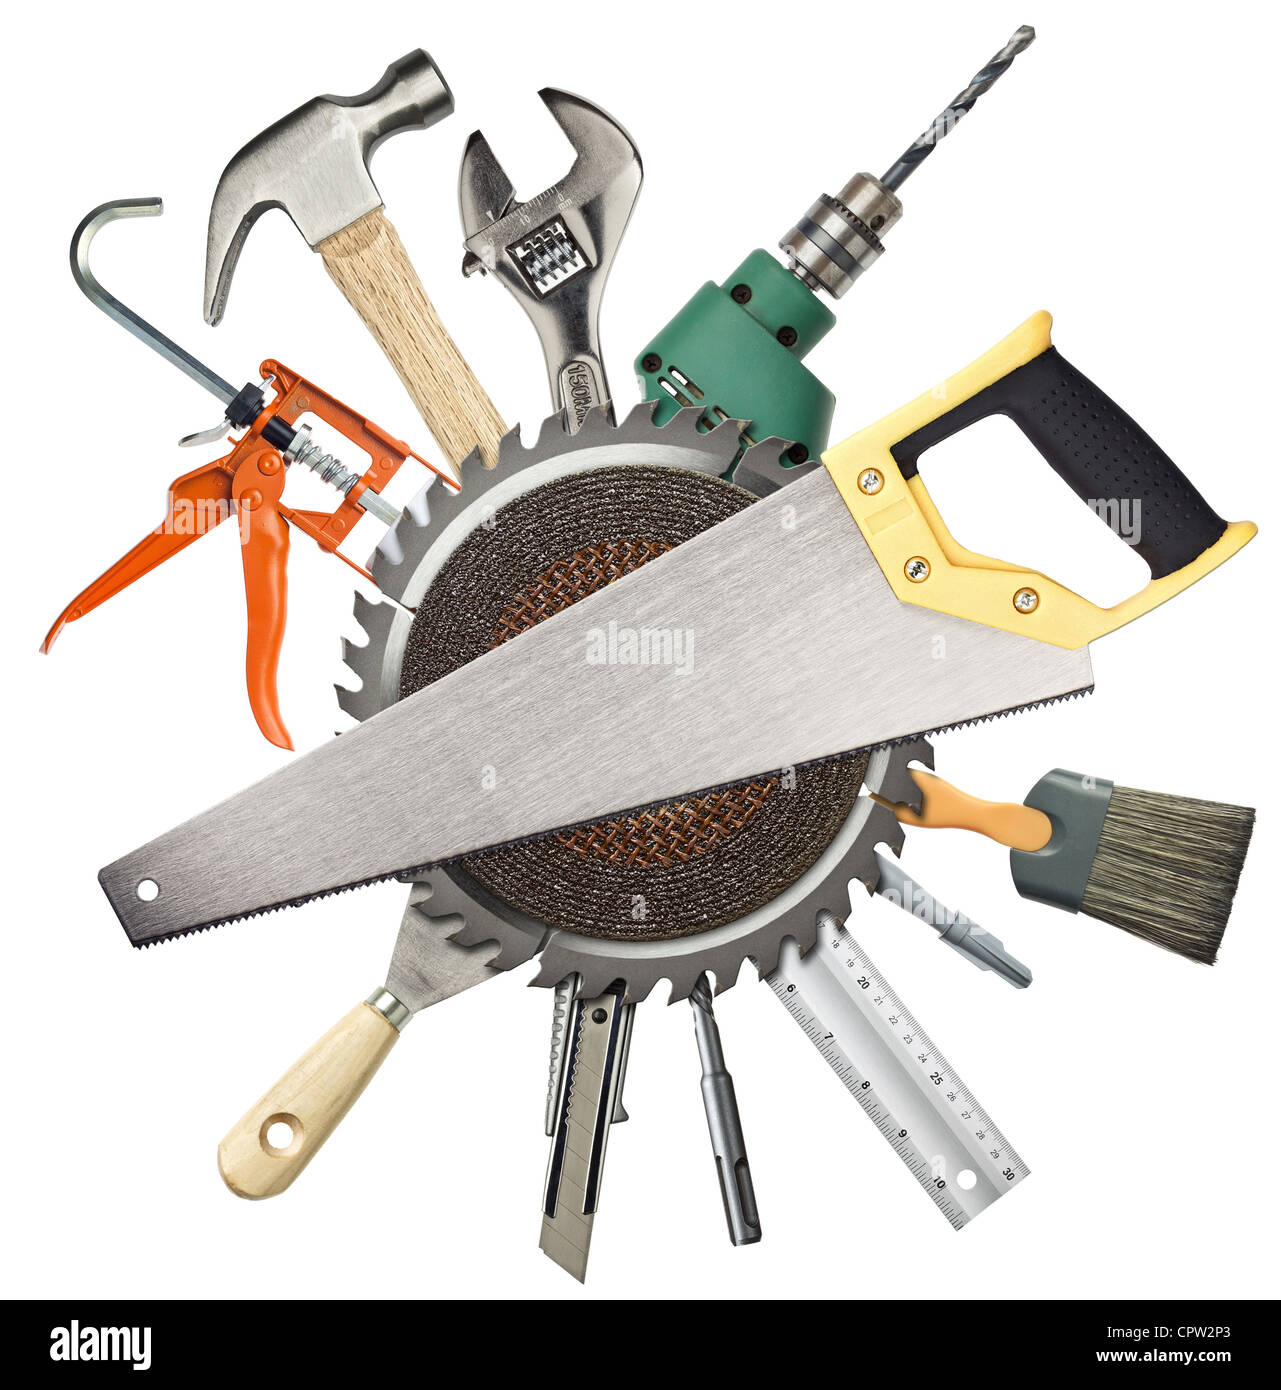 Carpentry, construction hardware tools collage Stock Photo